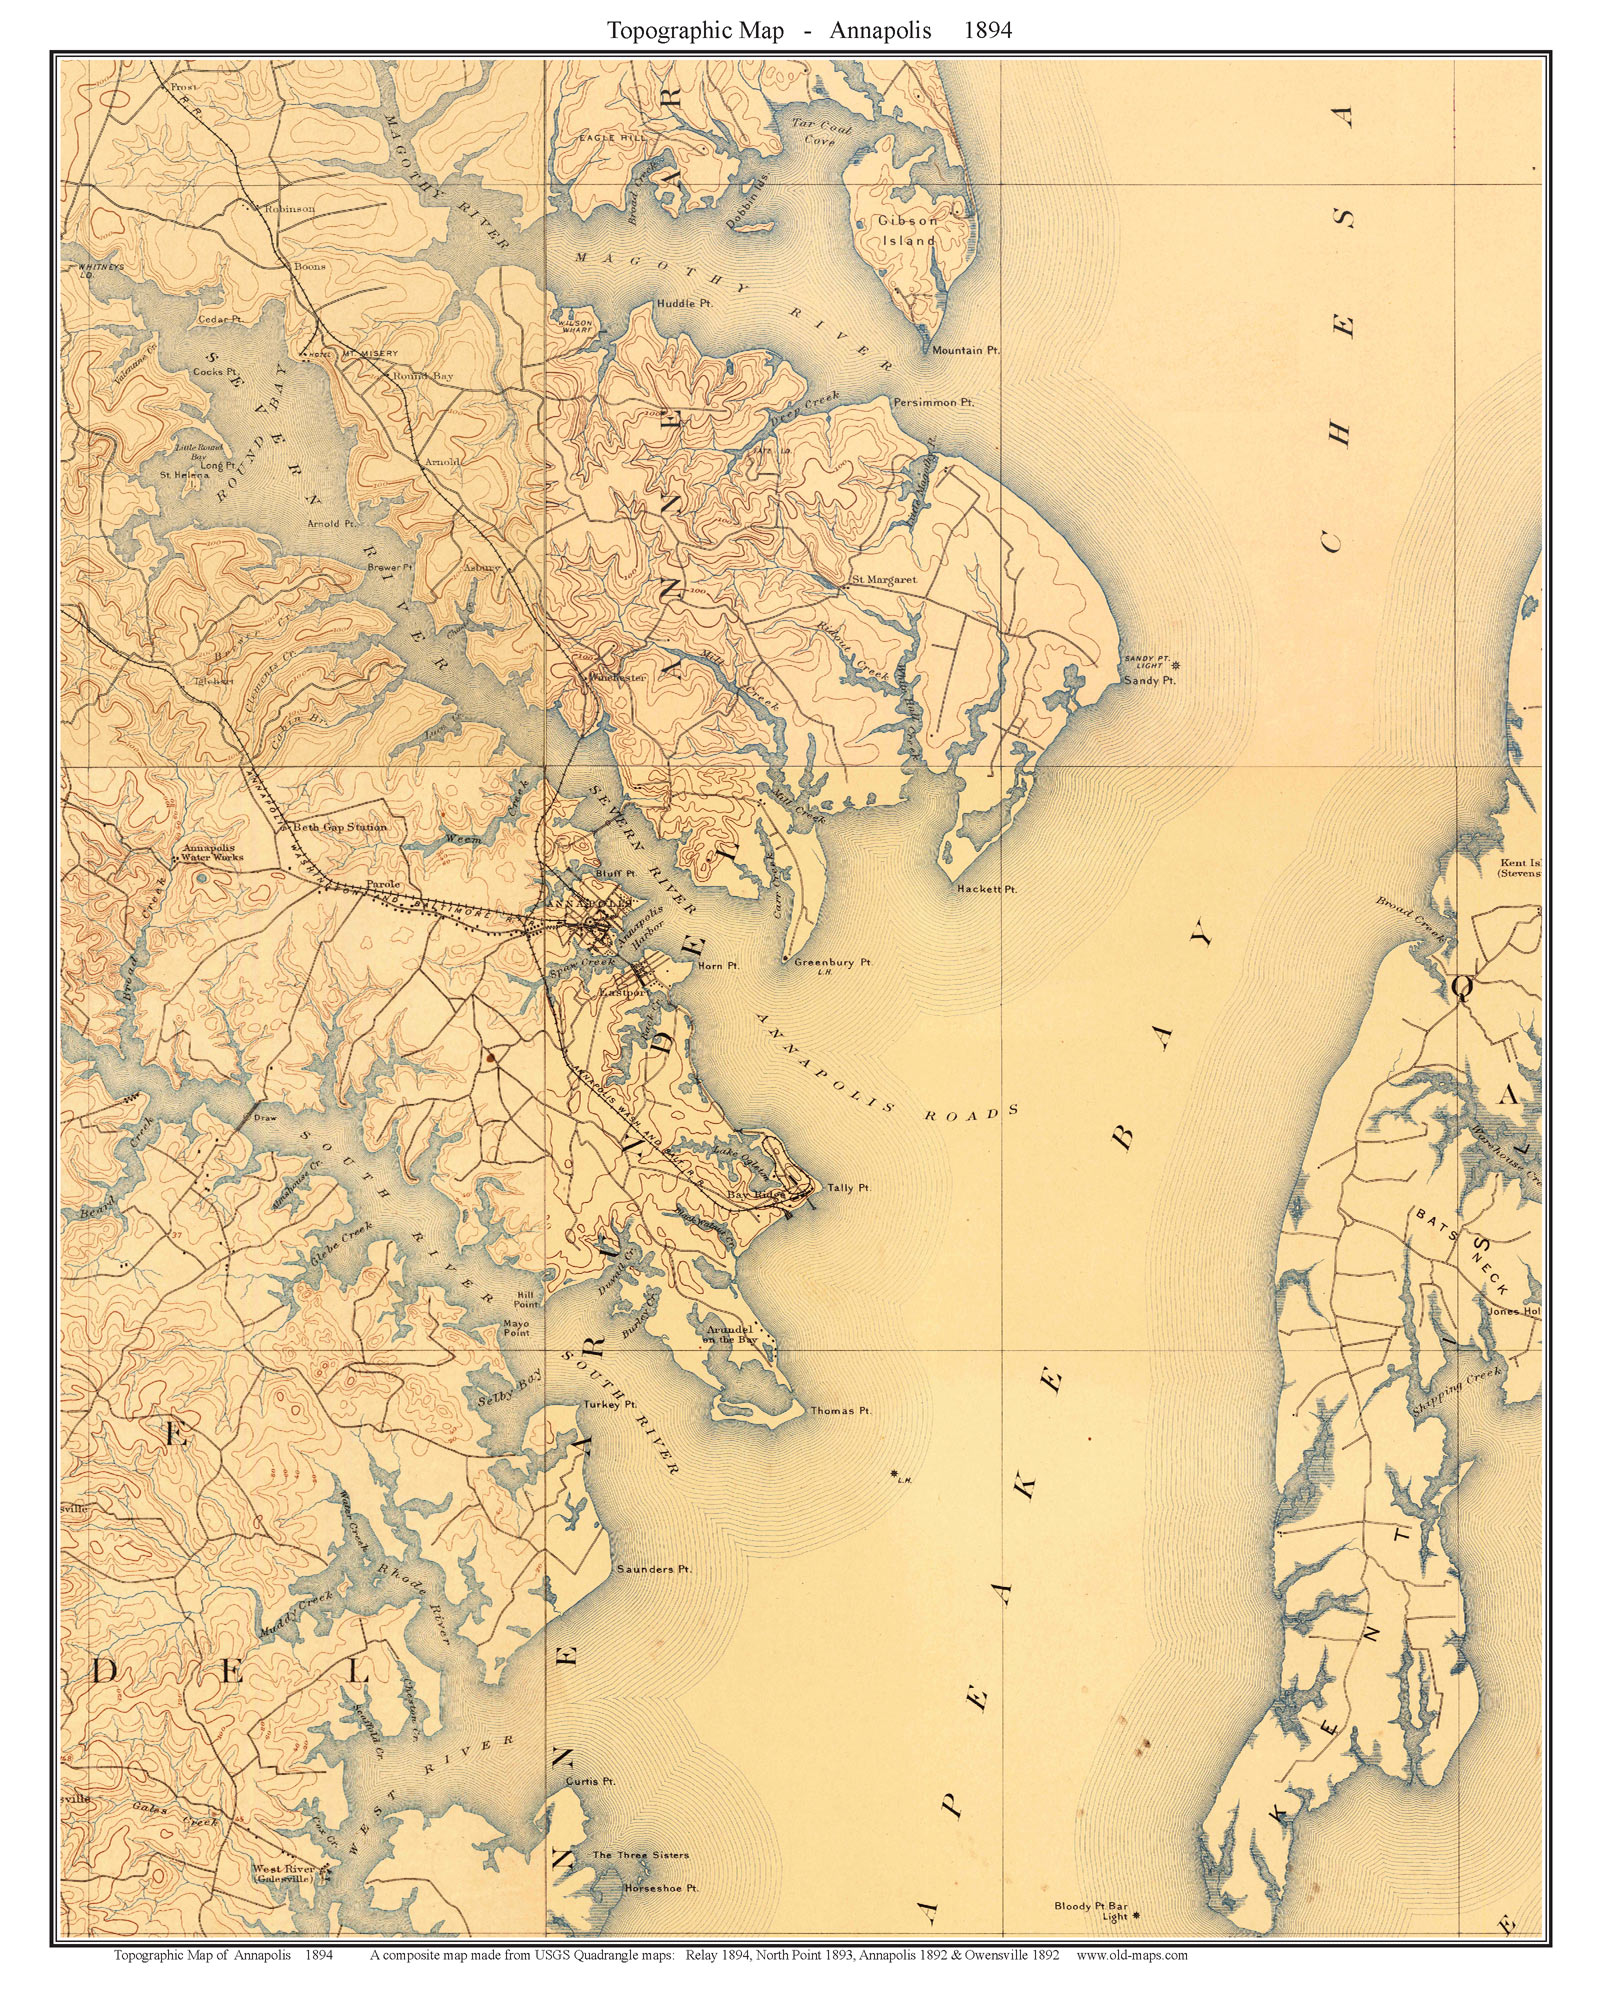 Chesapeake Bay Topographic Map.Old Topographical Maps Of The Chesapeake Bay Area